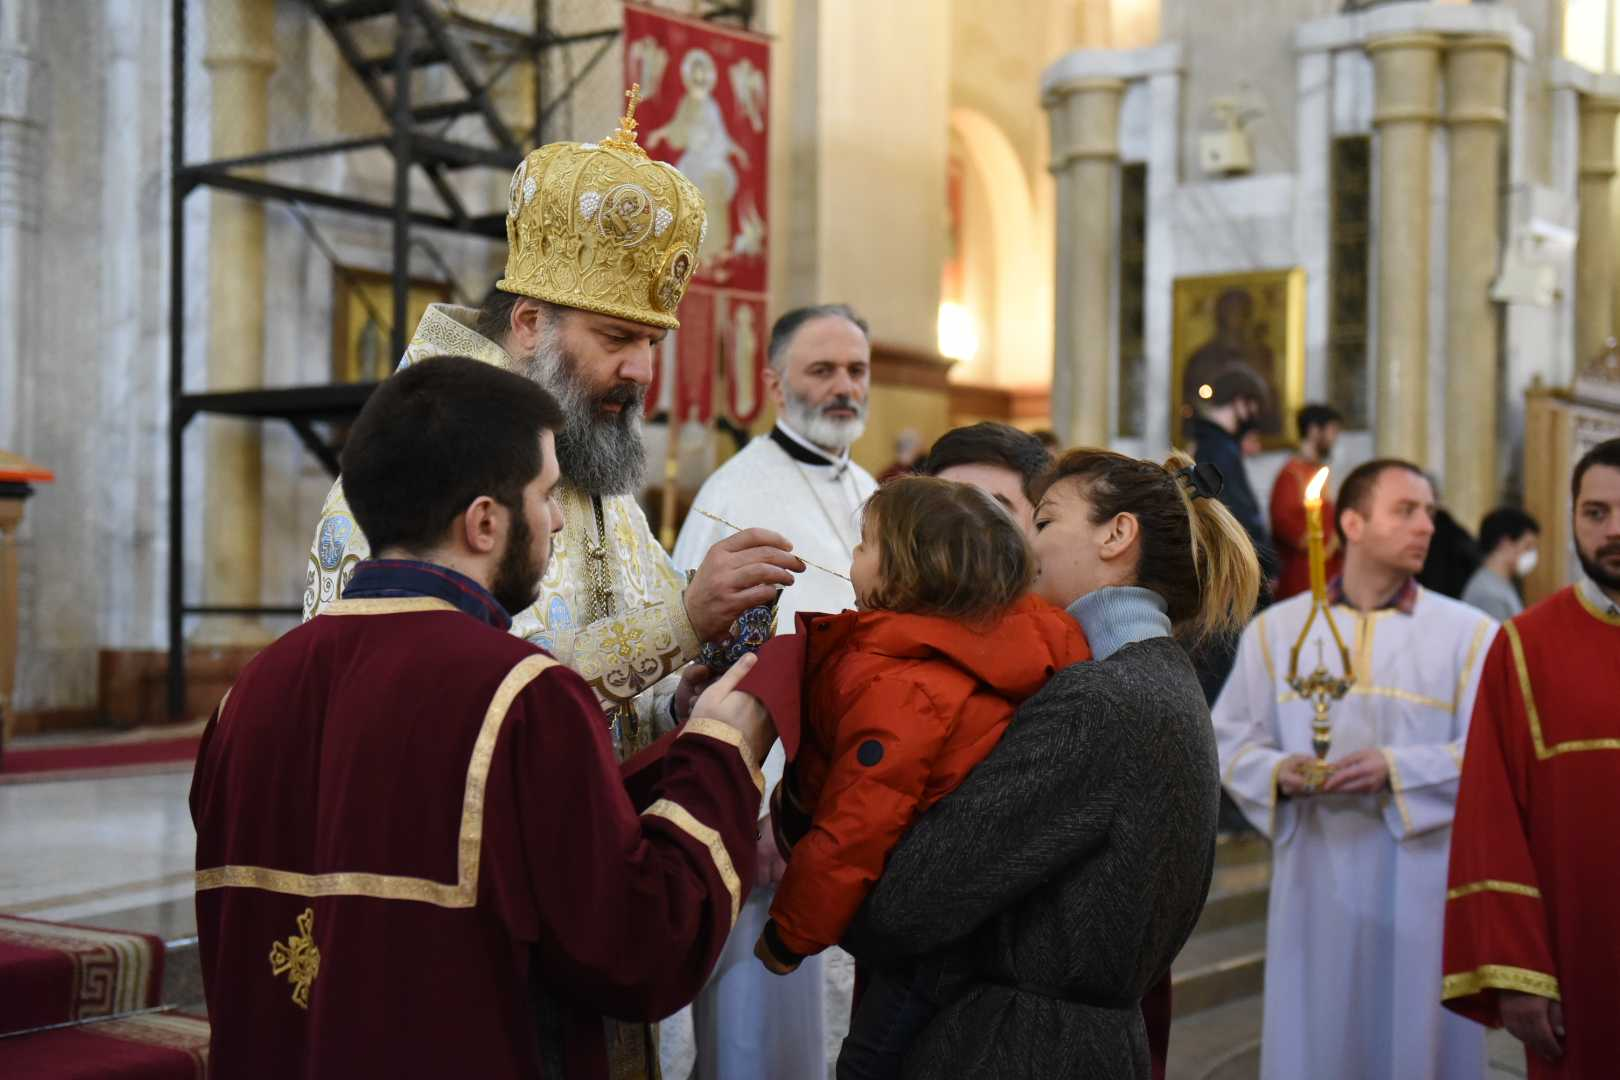 A priest gives Communion to a young girl at the Sameba Trinity Cathedral on 29 March. Photo: Mariam Nikuradze/OC Media.